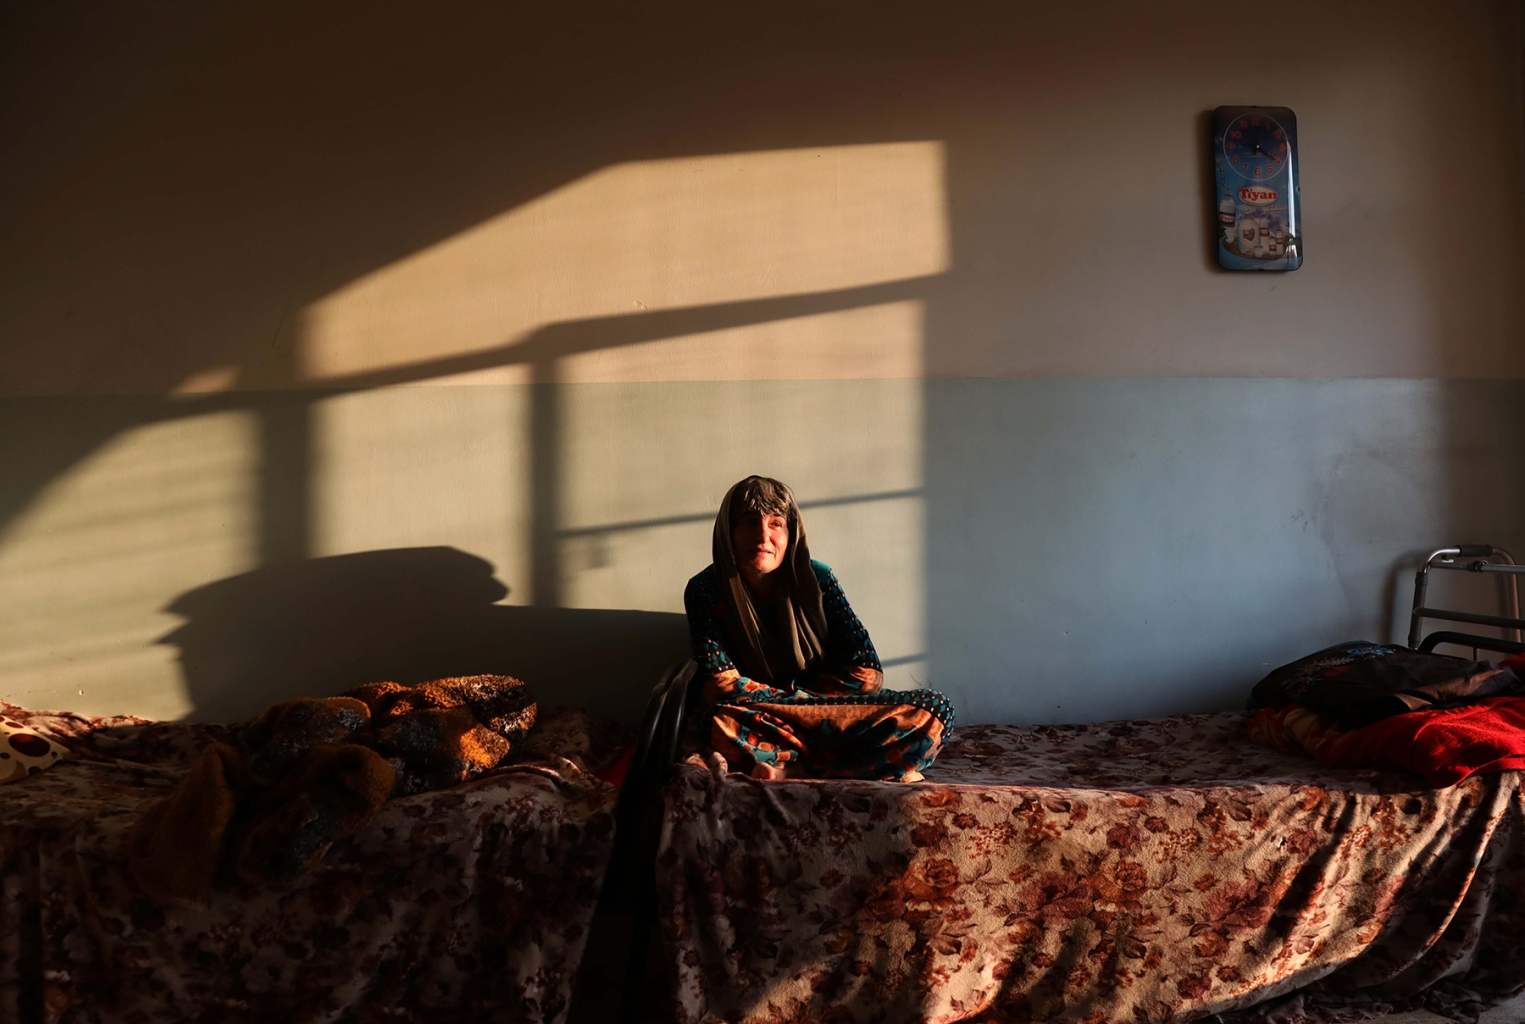 An Iraqi Kurdish woman sits in a house run by an NGO that takes care of people abandoned by their families in the northern Iraqi city of Arbil, on Nov. 8. SAFIN HAMED/AFP/Getty Images